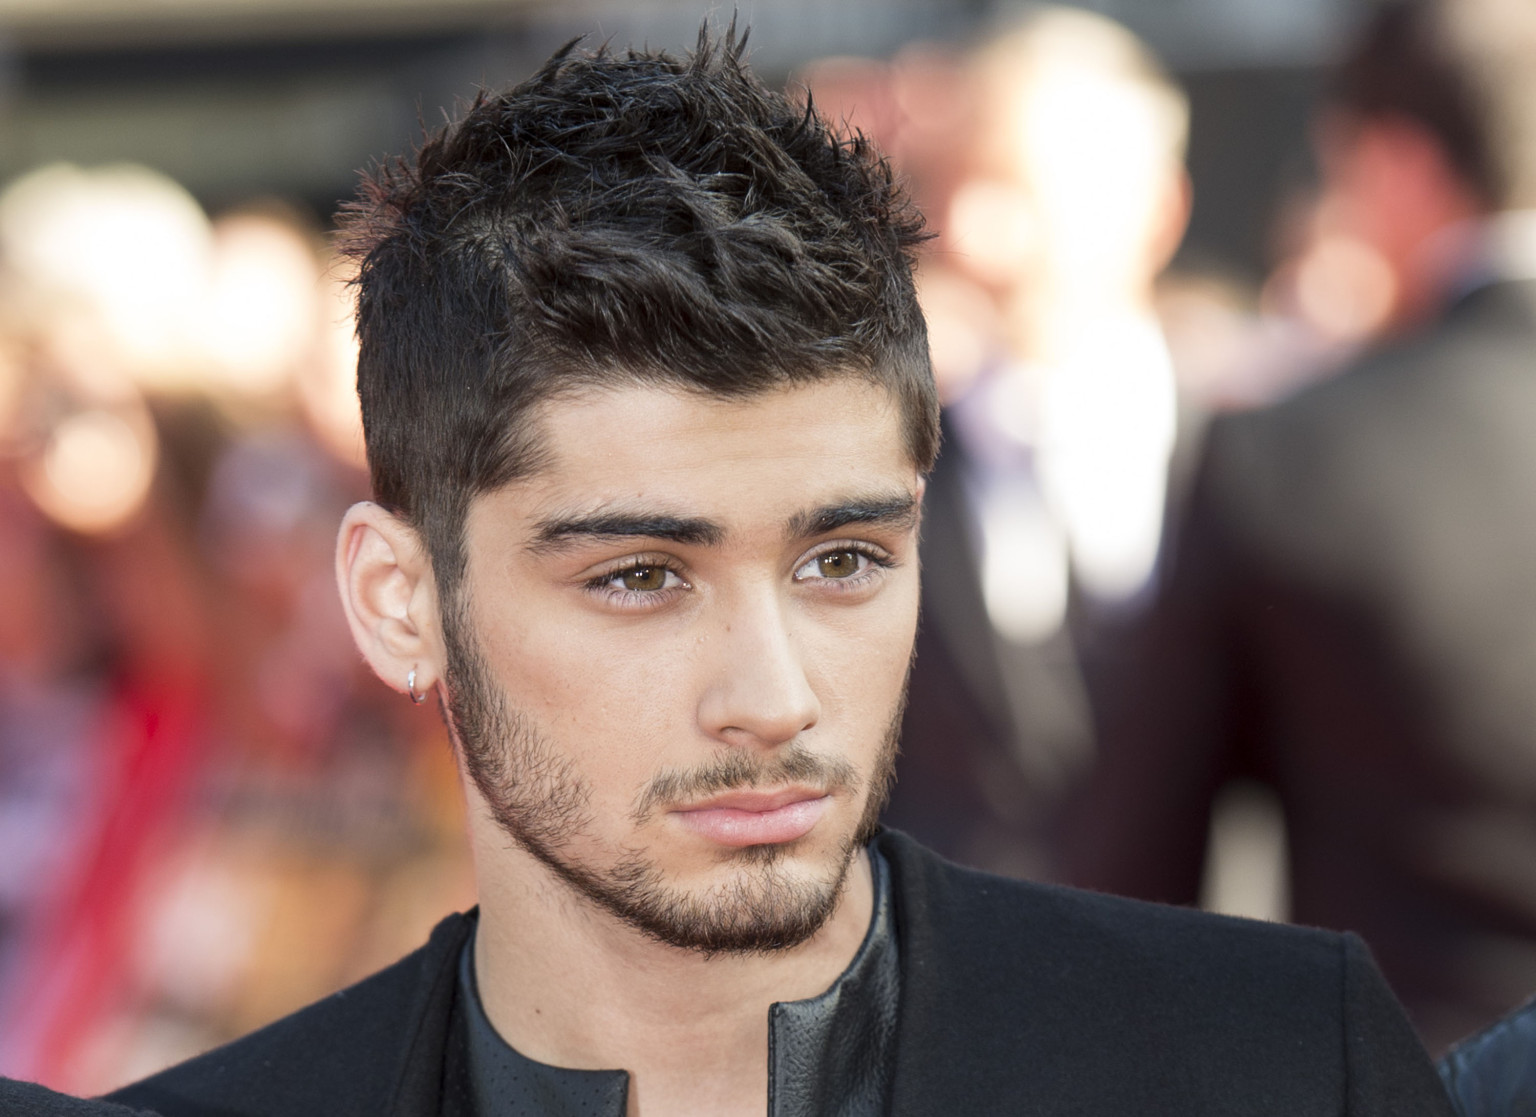 The Top 26 Sexiest Men In The World